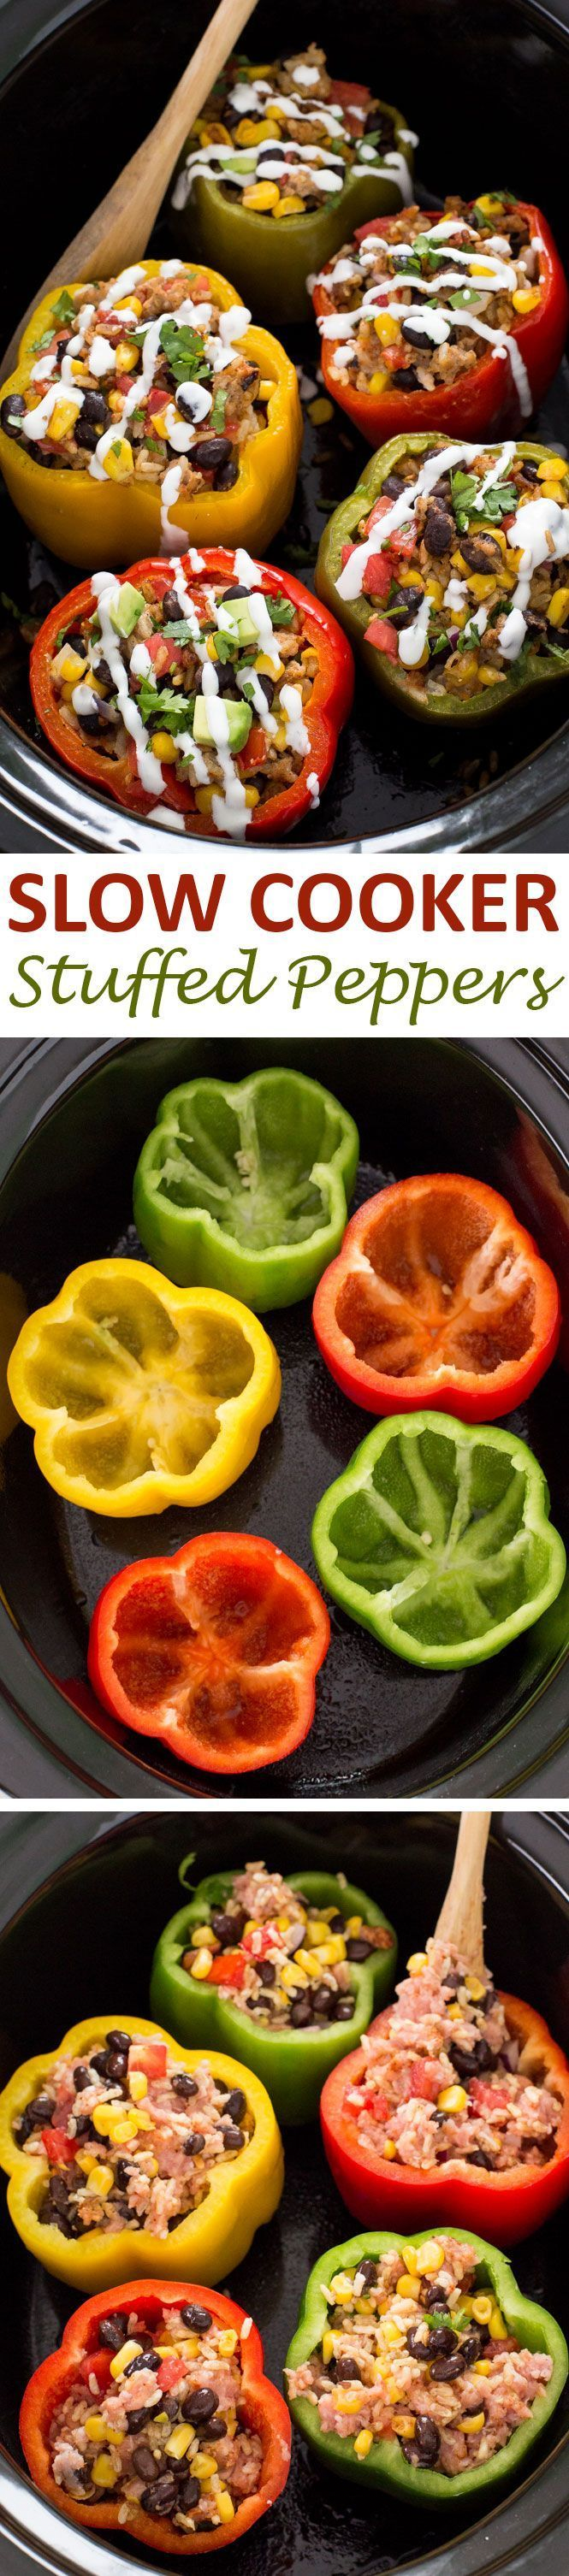 Mexican Slow Cooker Stuffed Peppers. #lordhavemercy